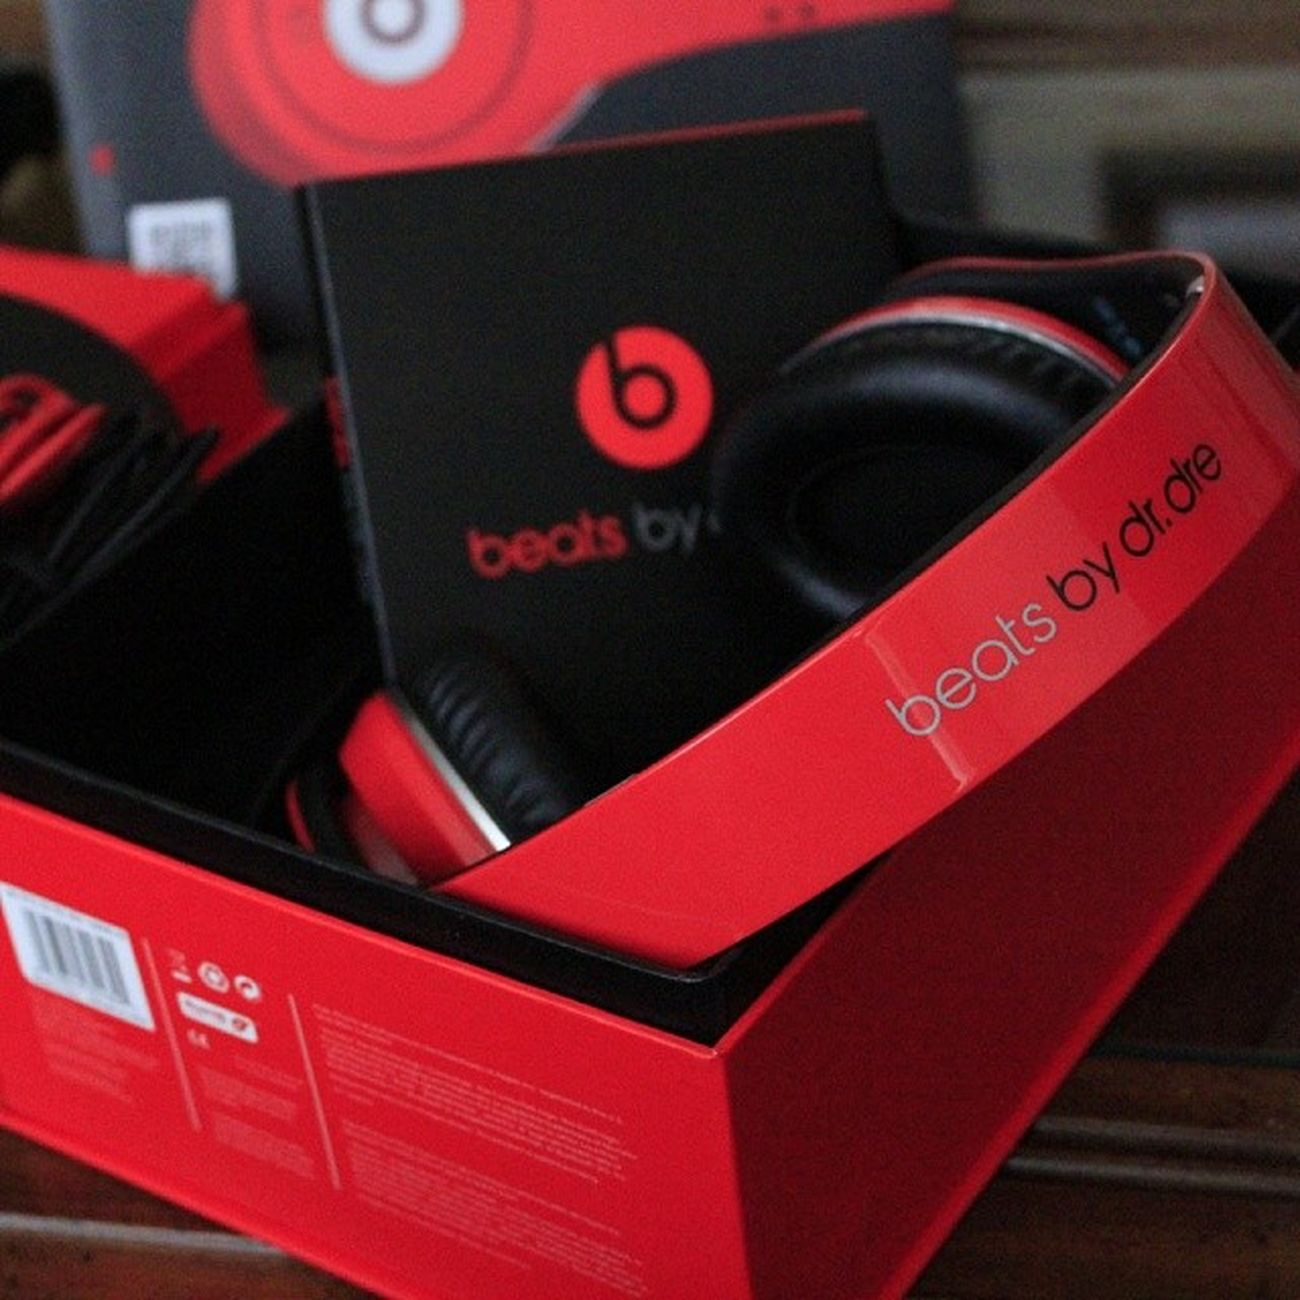 Would never buy these for myself. Always thought that they're overpriced & nothing compared to Bose. But it's a gift from my Bro & I gotta show him love. LOL Studio Beatsbydre Jad